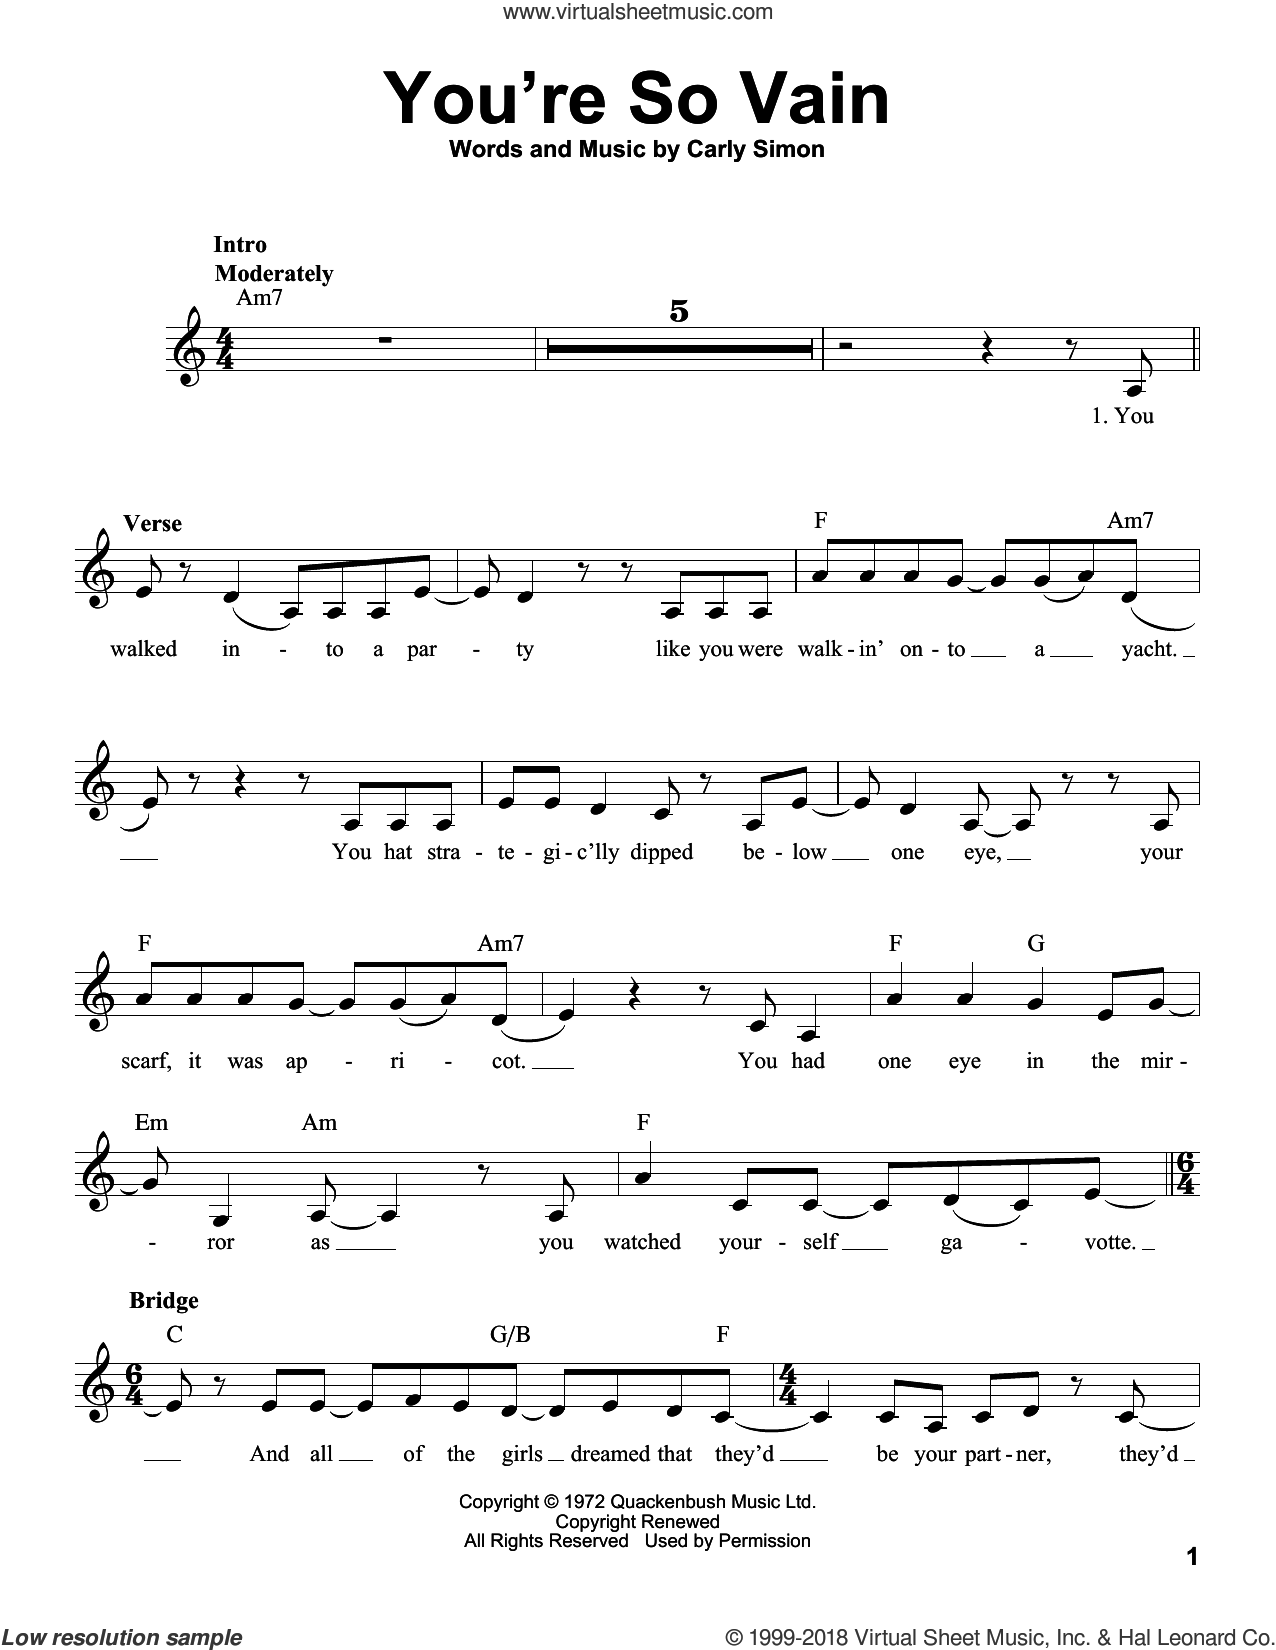 You're So Vain sheet music for voice solo by Carly Simon, intermediate skill level